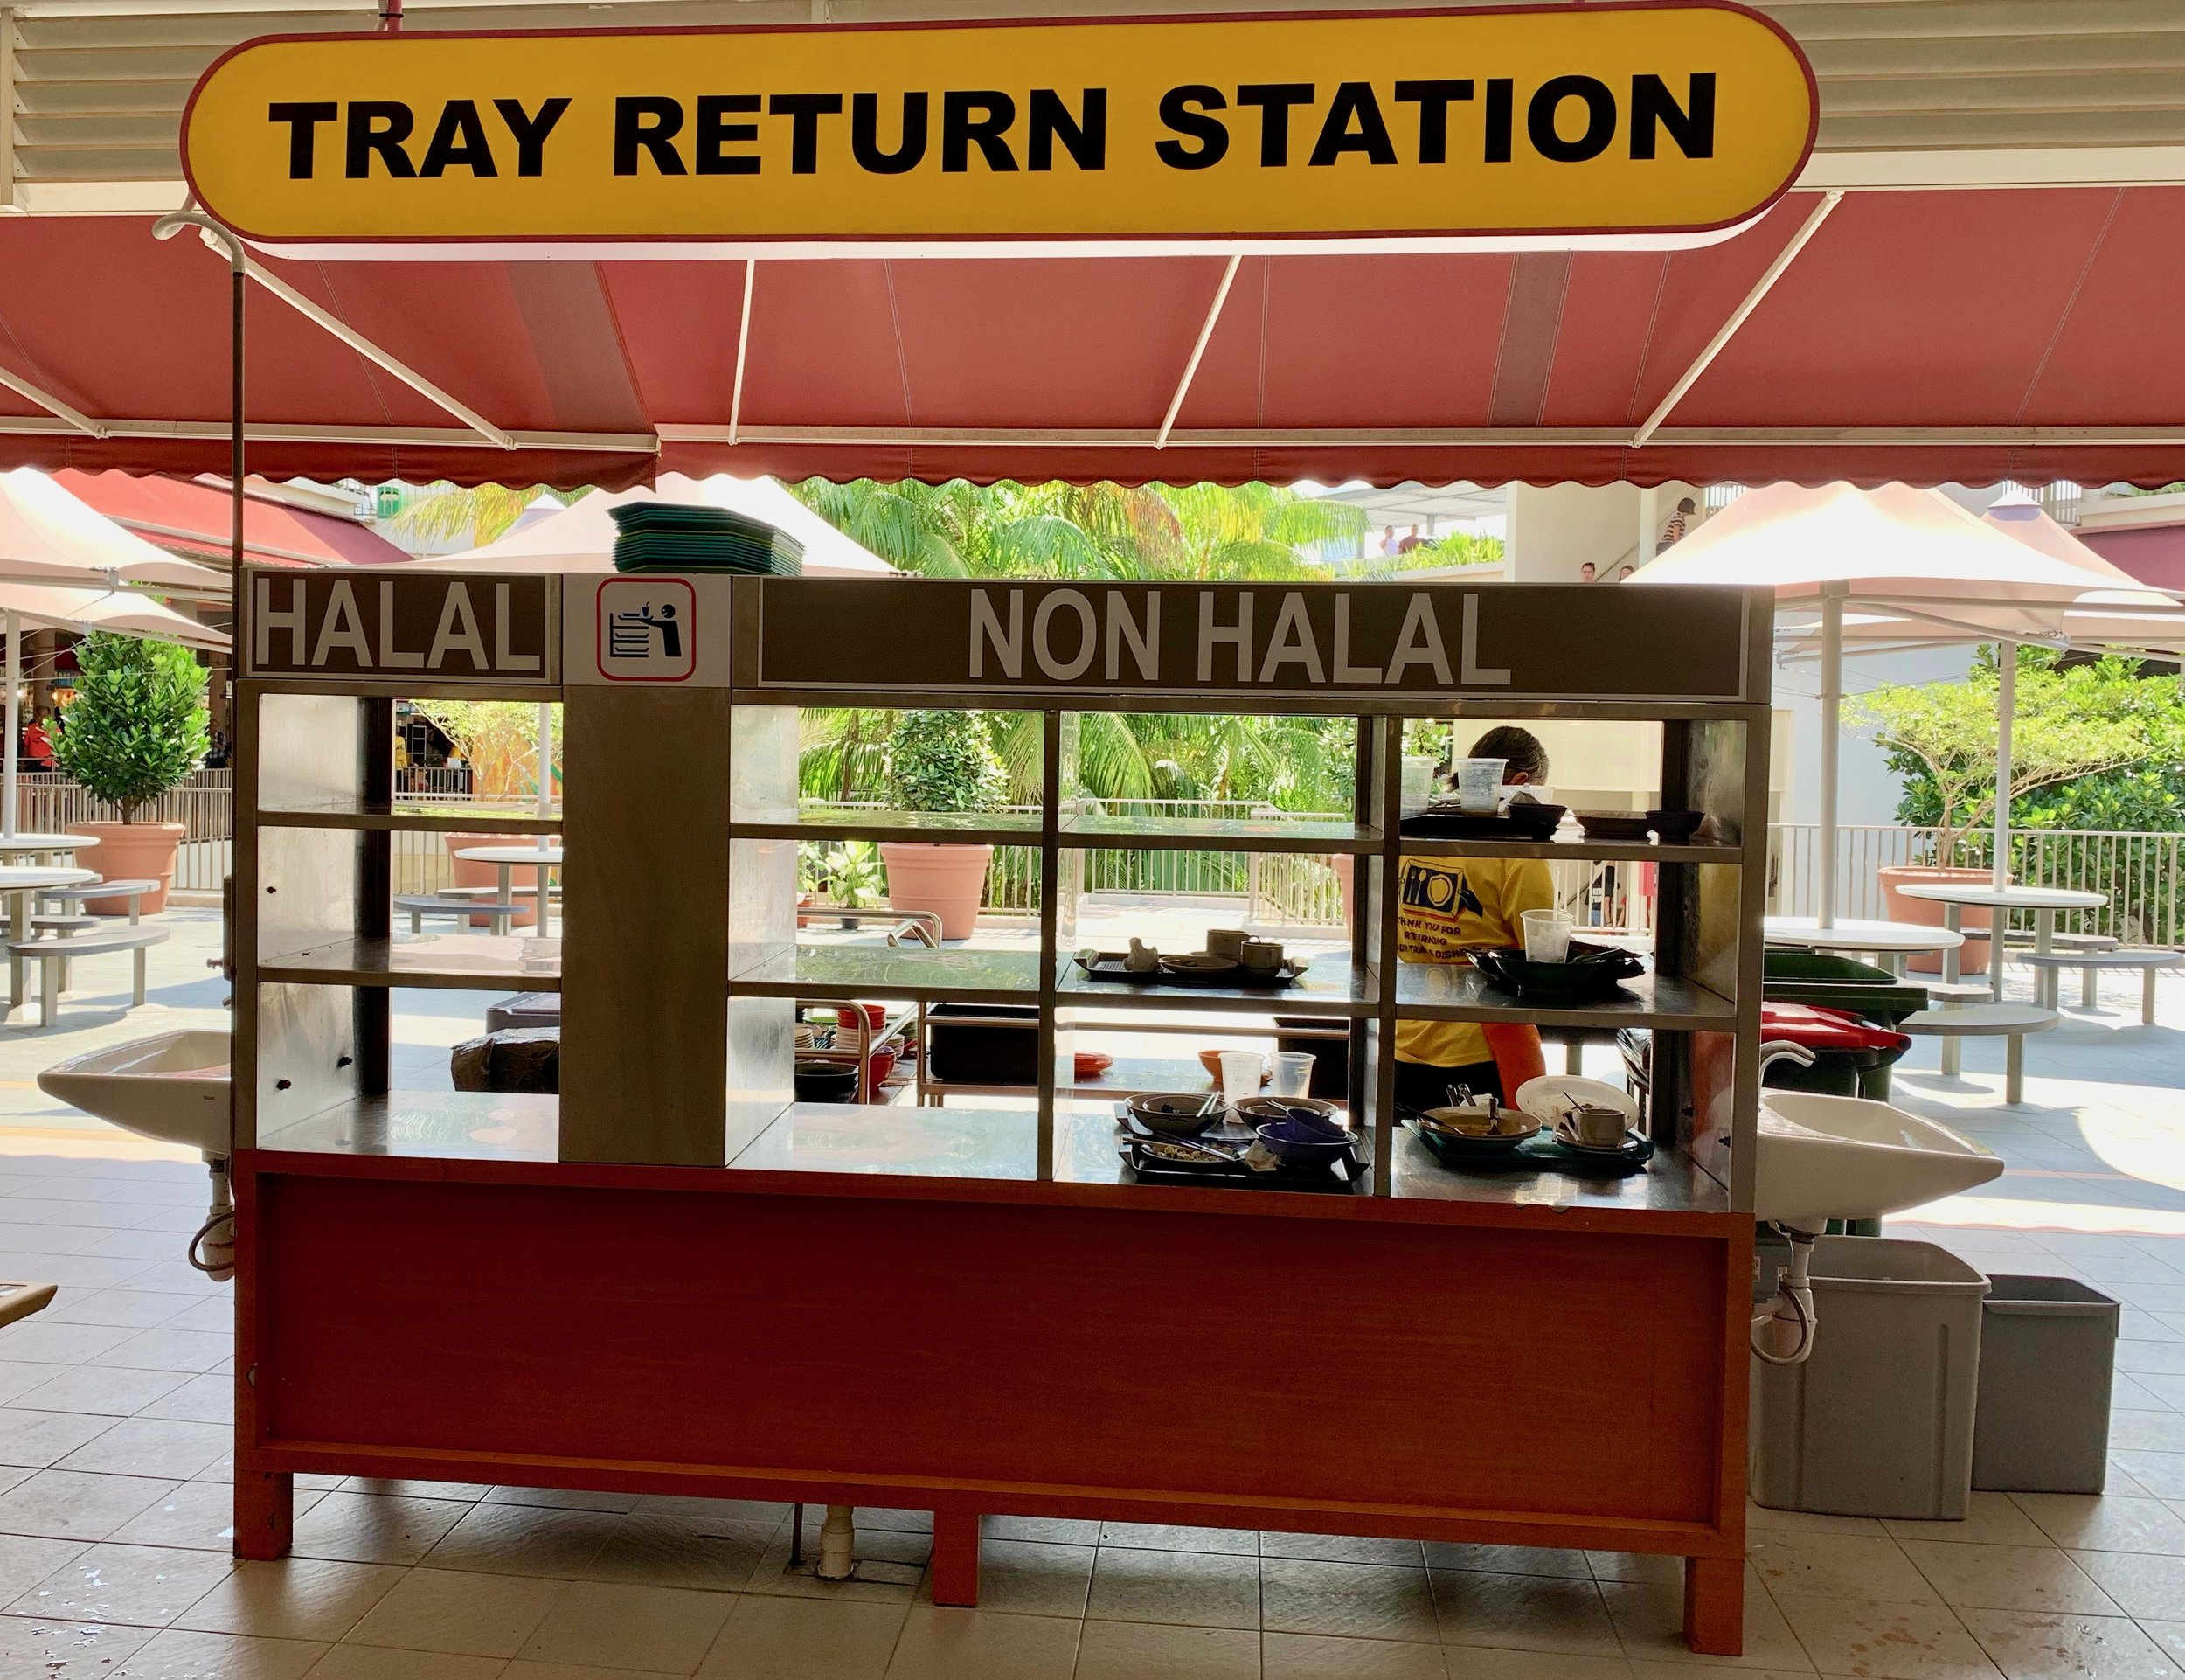 Singaporeans are very considerate of all ethnic groups. Some of the hawker stalls serve halal food, which means it is prepared in a way that adheres to Islamic law. Halal food trays/containers/utensils should not mix with non-halal food items.